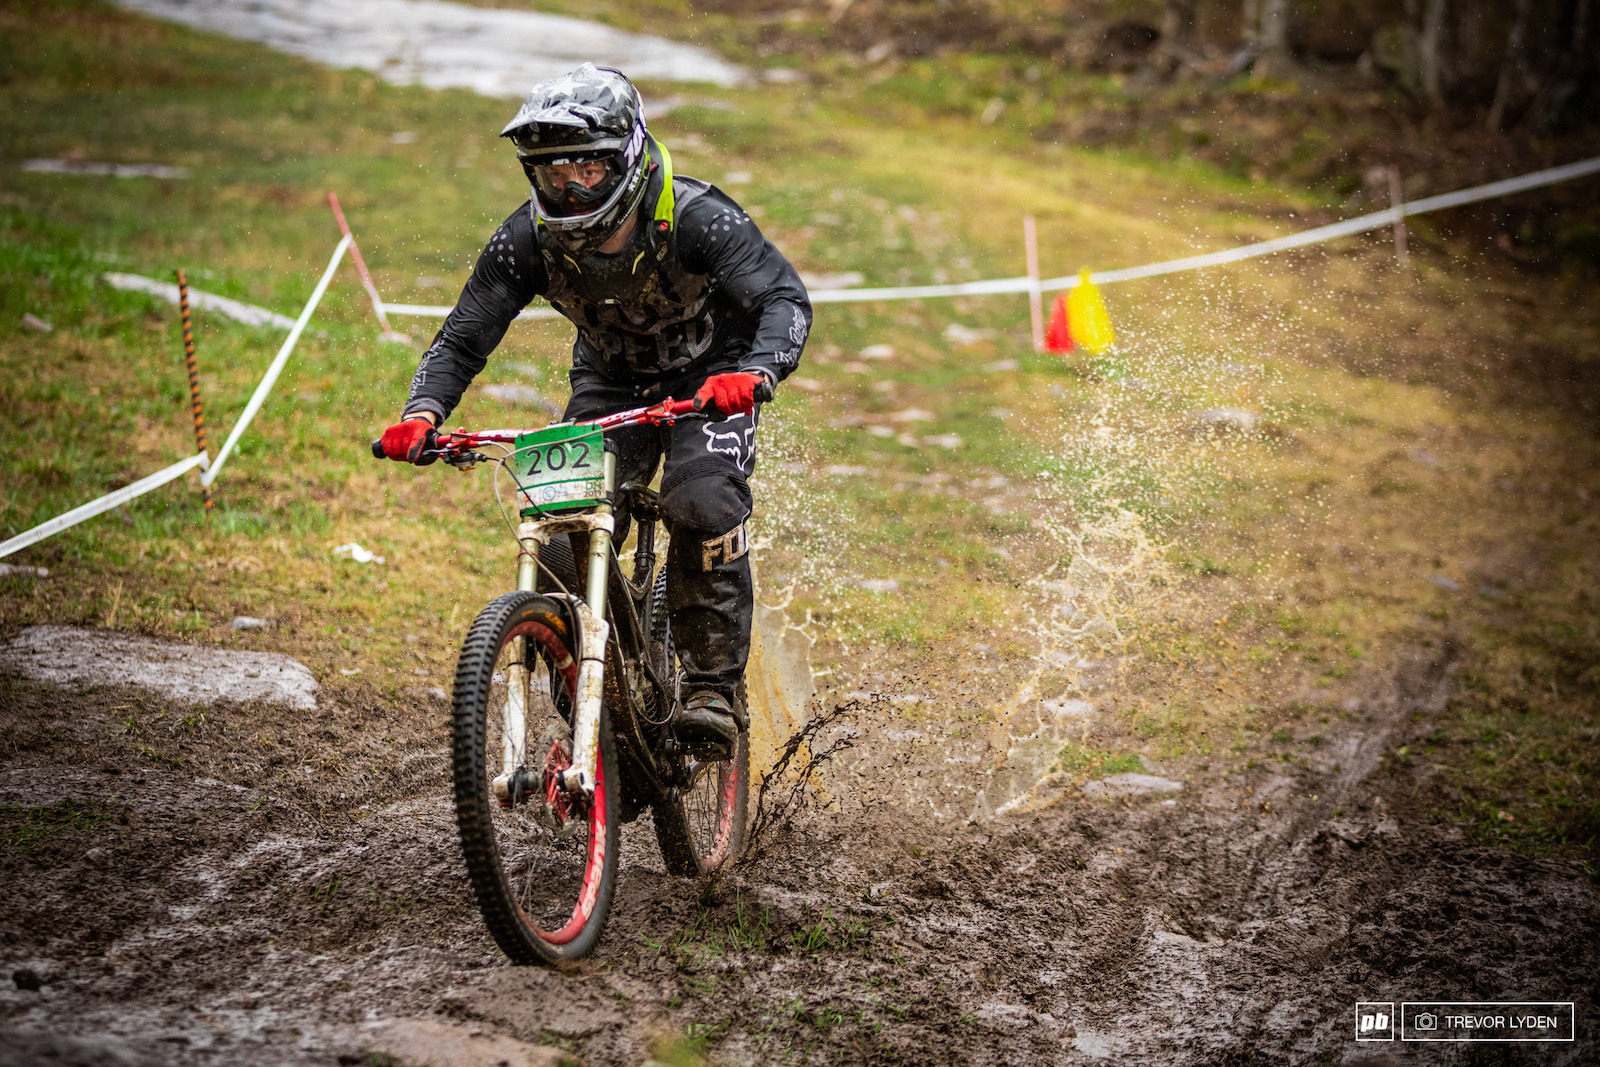 Conditions were muddy for the Crossroads event.